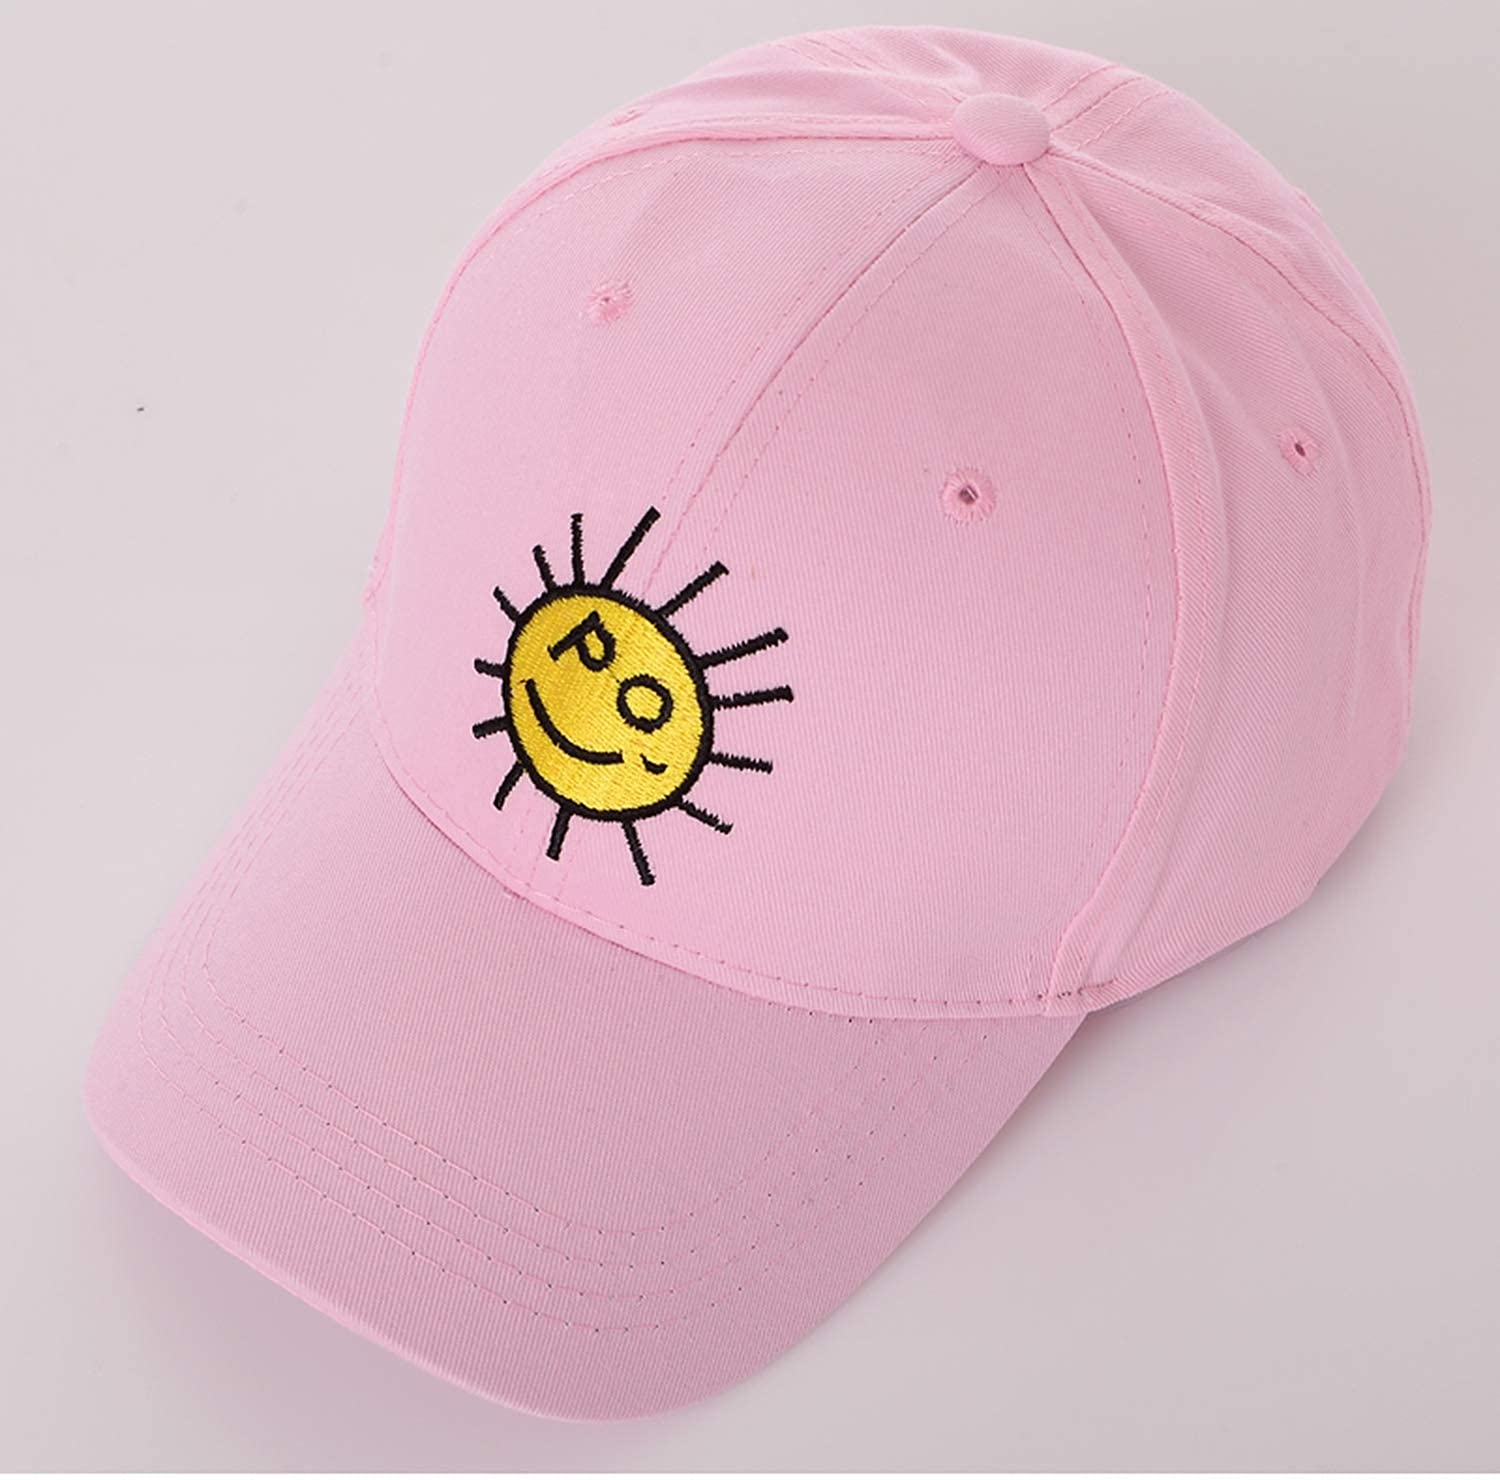 Summer Men Baseball Hats for Women caps Men Hip hop Casual Sun hat boina Unisex Baseball Cap Planas